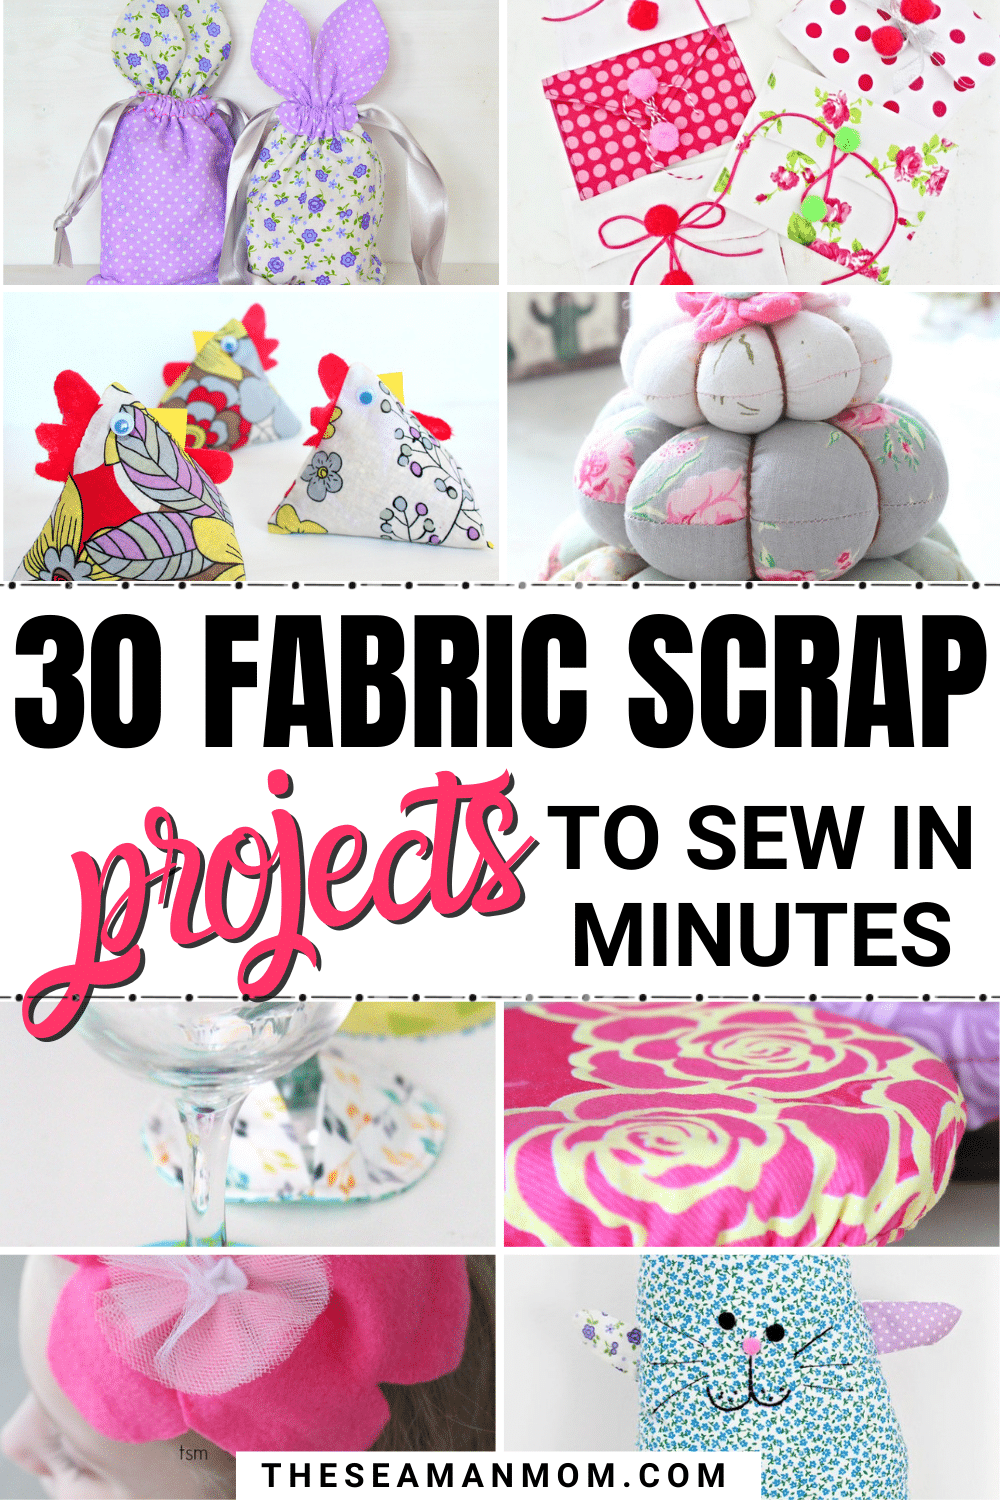 Find it hard to part ways with your fabric scraps? No need to throw those away, incorporate them in any or all of thesefabric scraps projects! So cute and easy to make, thesescrap fabric ideas makesewing with scraps such a fun, enjoyable journey! via @petroneagu